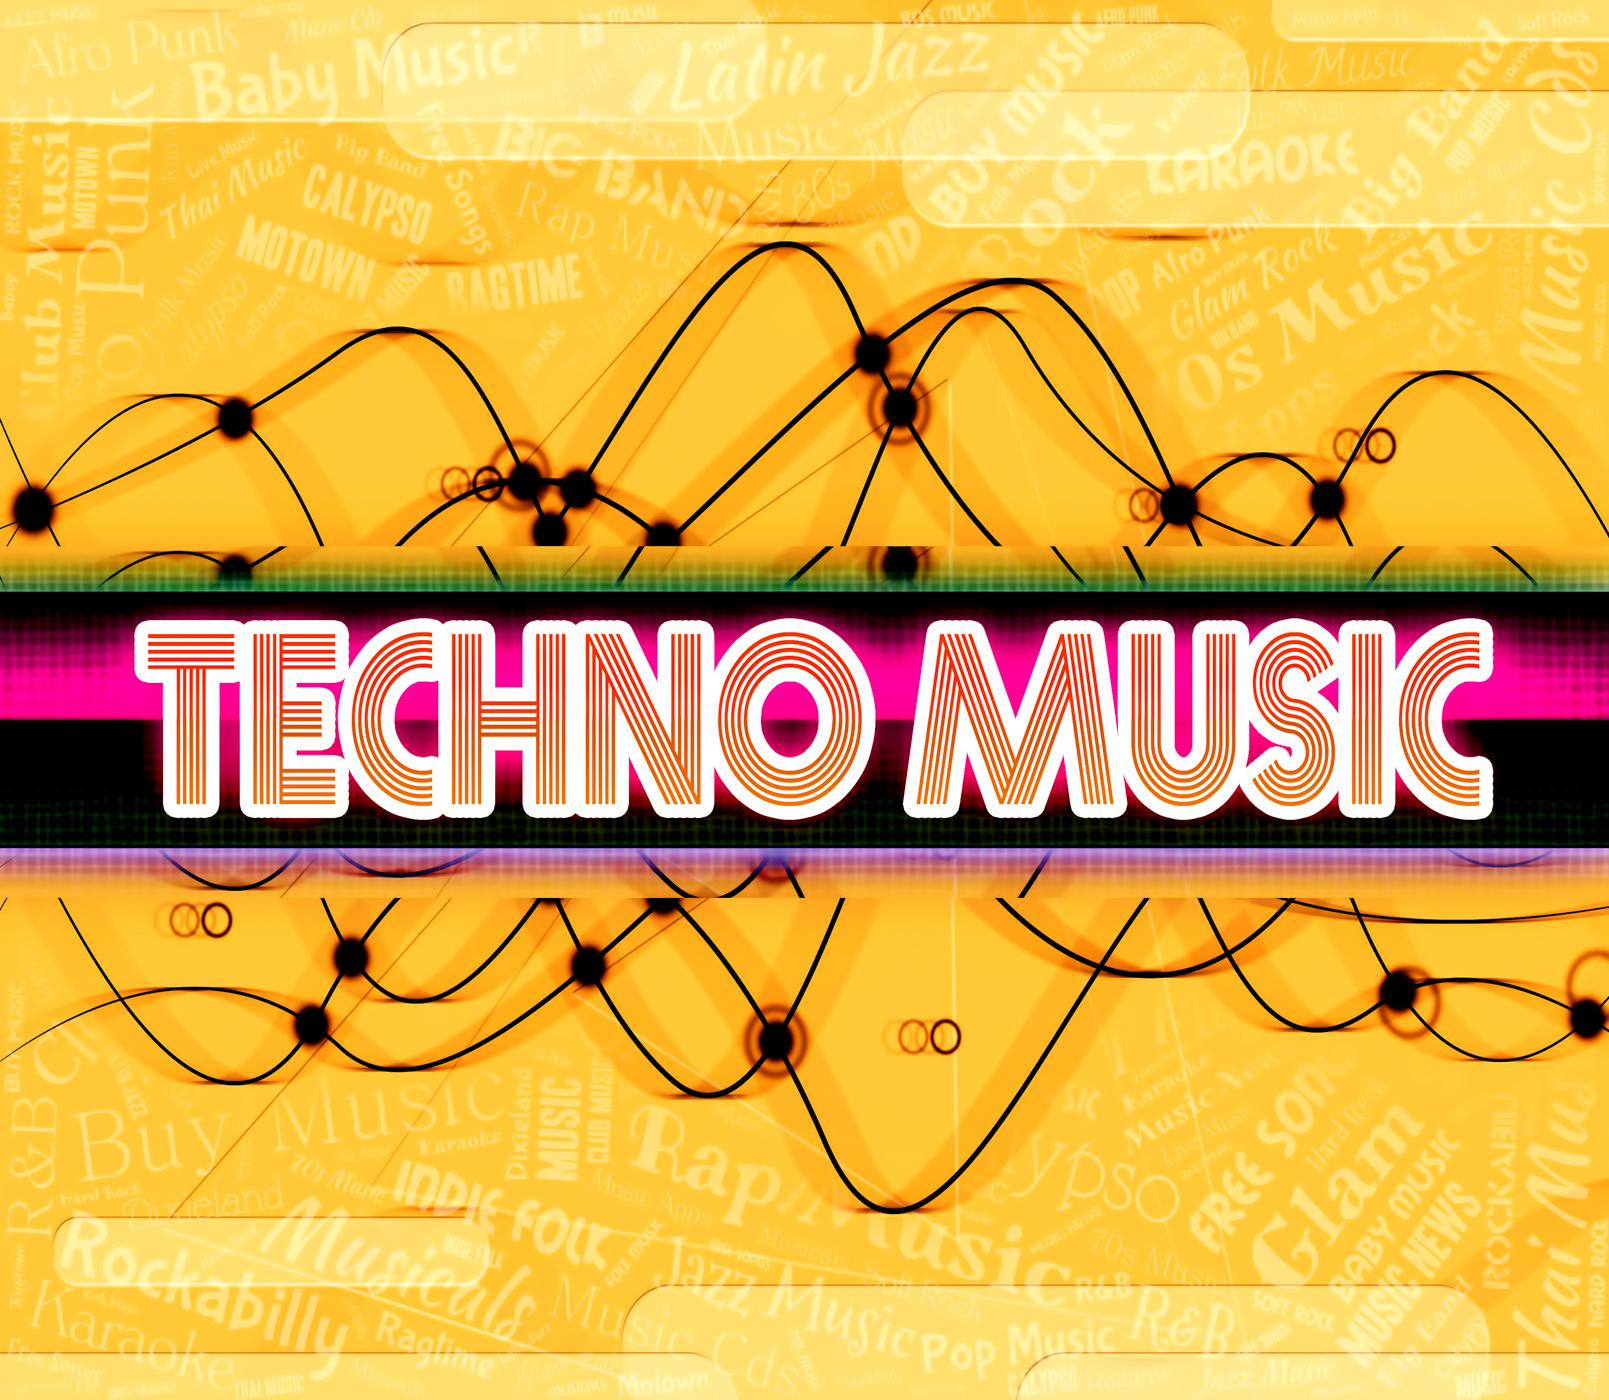 Techno music shows electric jazz and audio photo